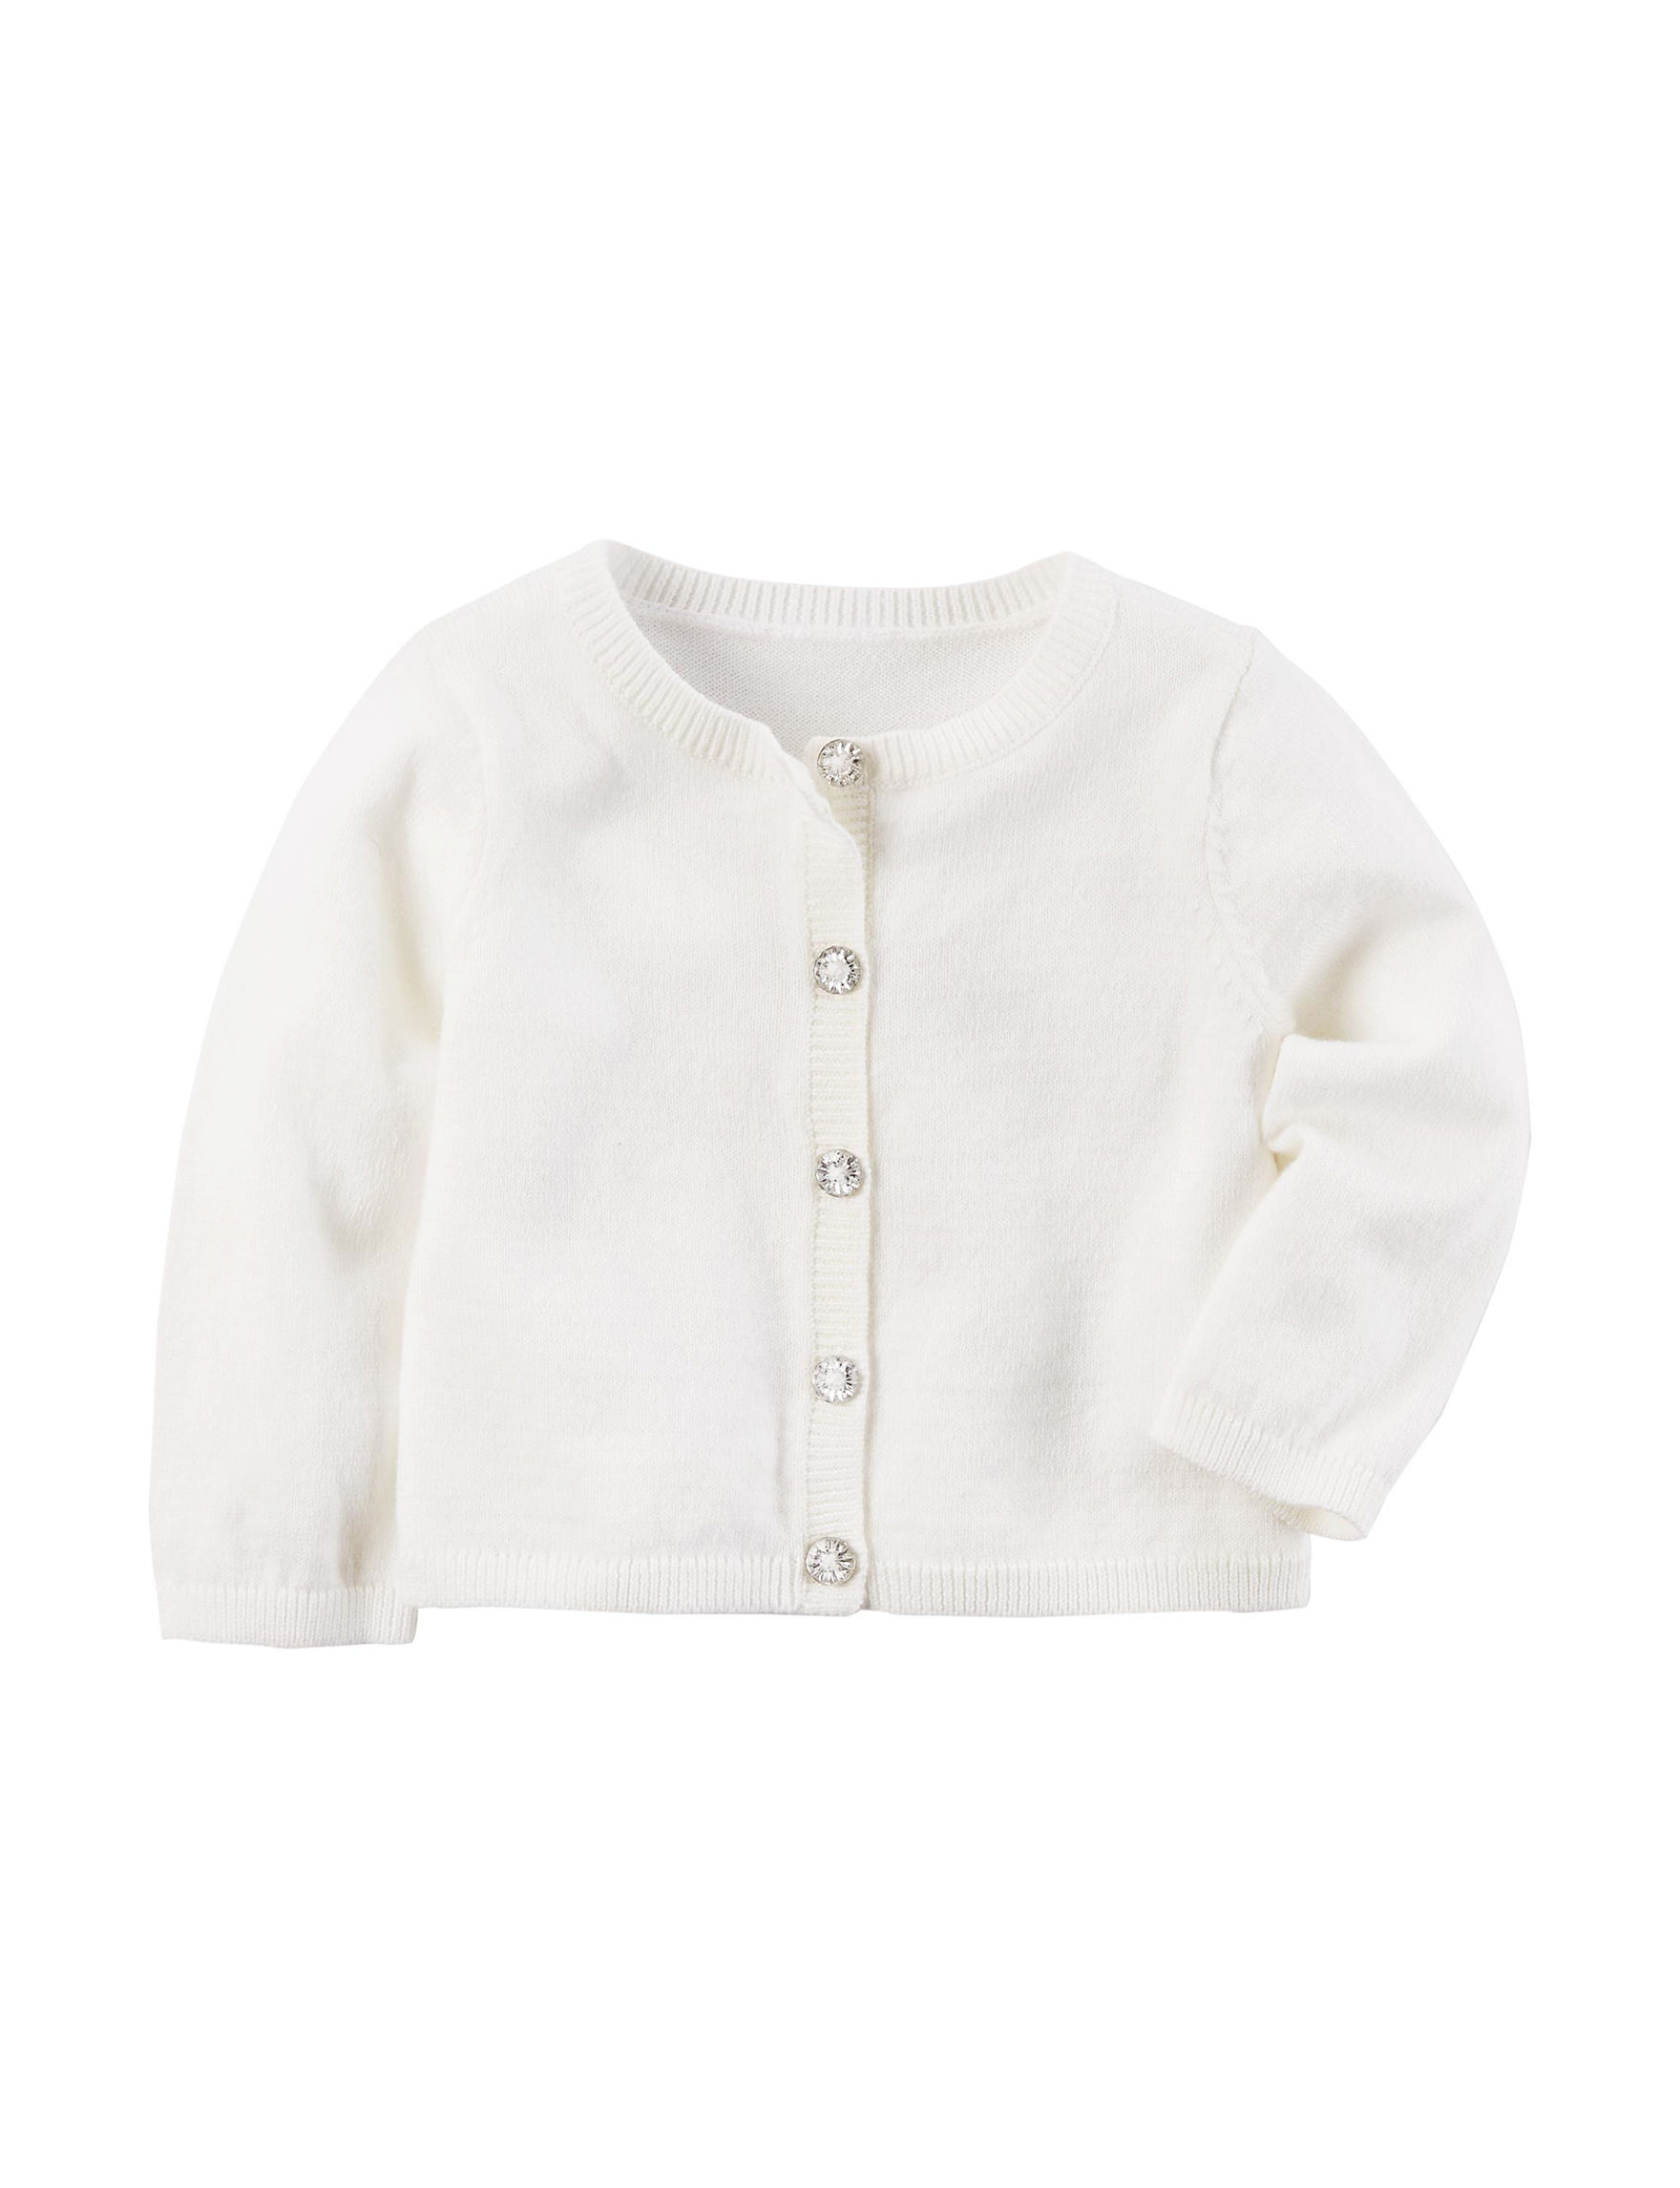 Carter's Ivory Sweaters